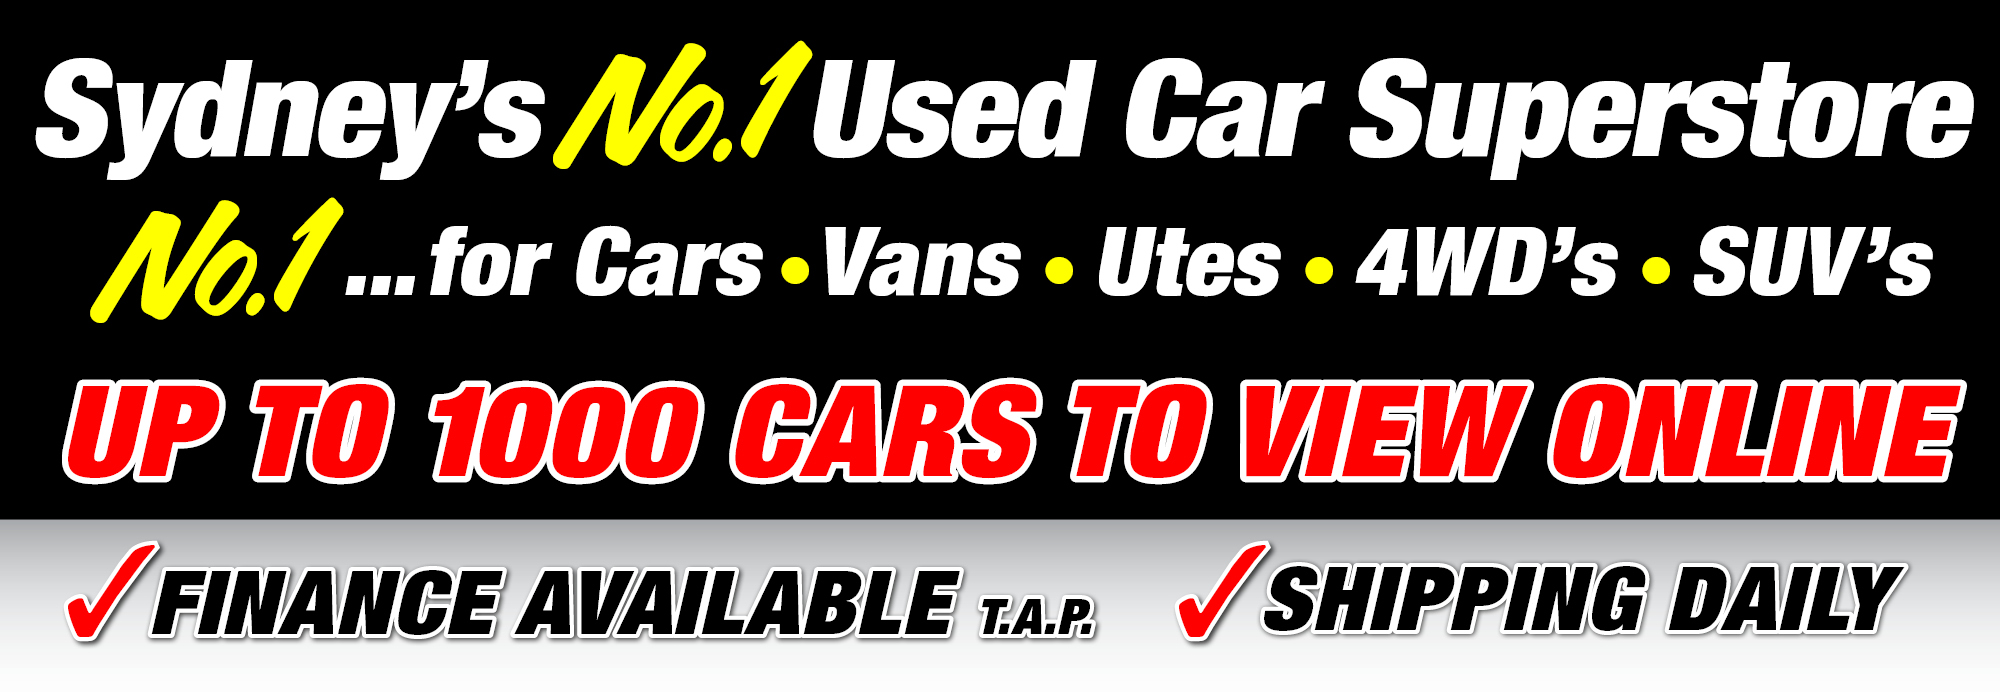 Cheapest Car Dealers In Sydney